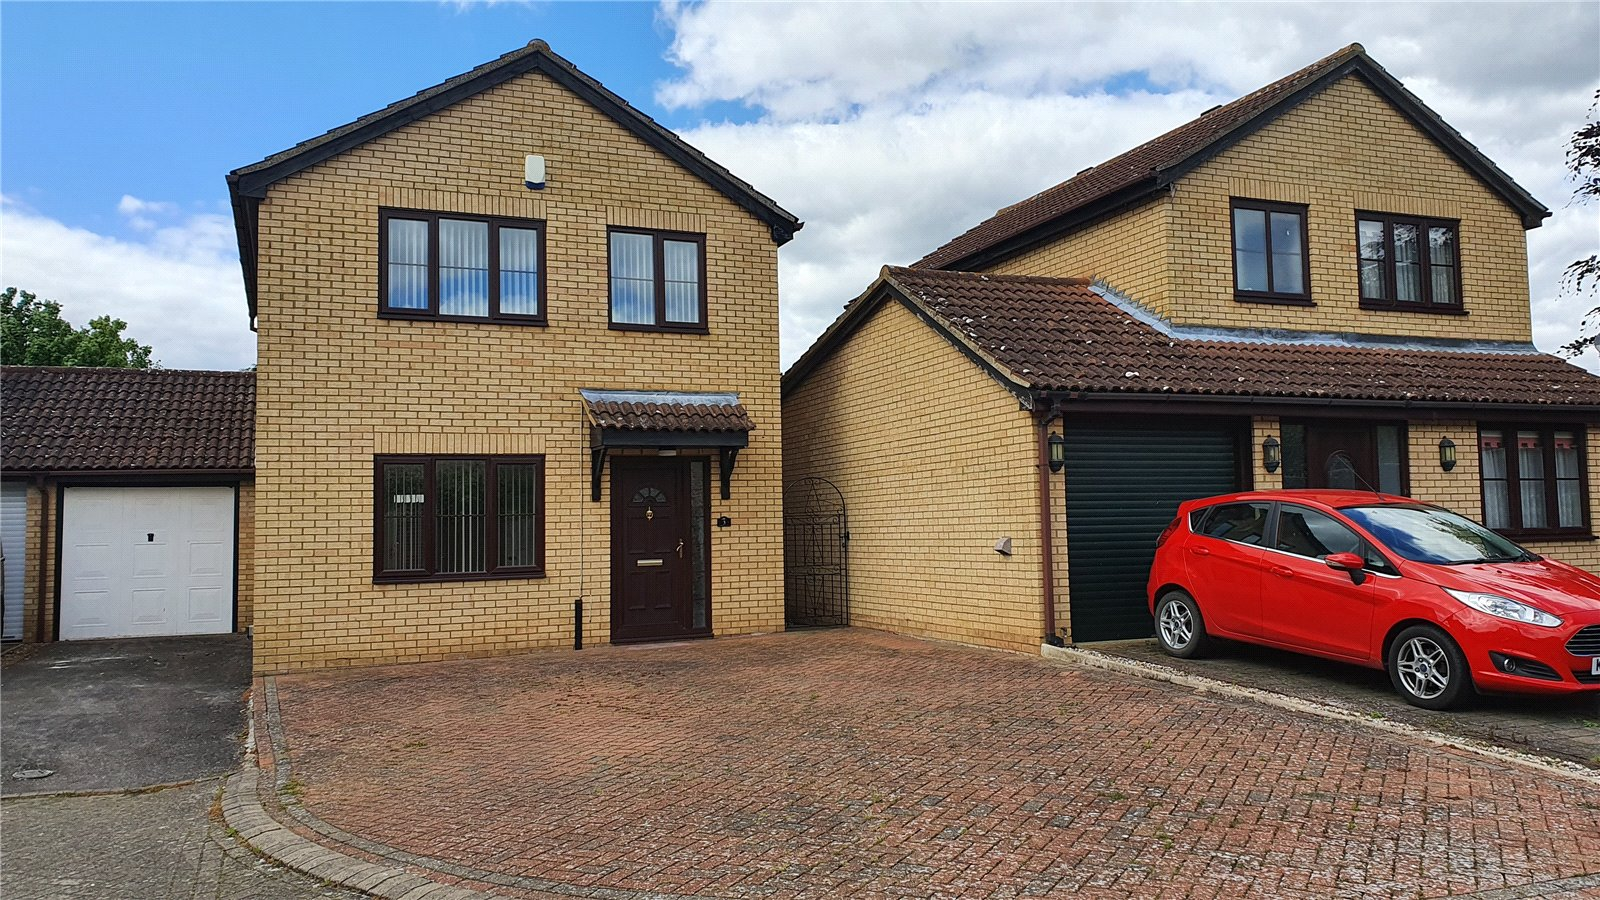 3 bed house for sale in Farm Close, Wyboston, MK44